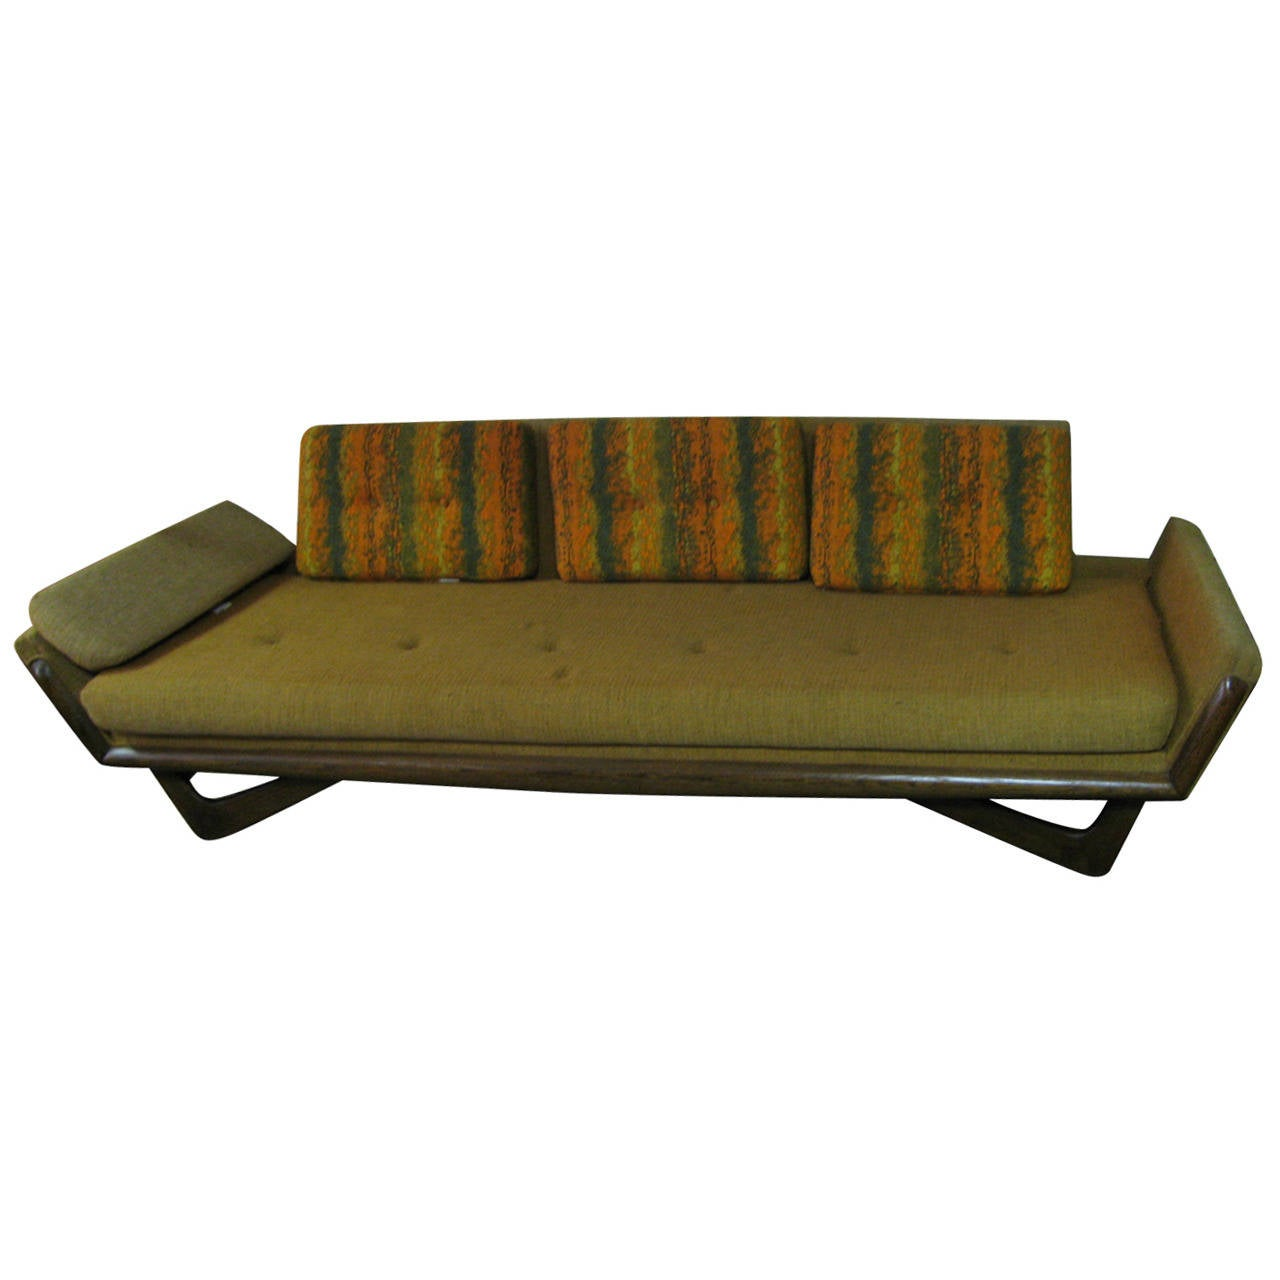 Adrian pearsall mid century gondola sofa for sale at 1stdibs for Mid century sectional sofa for sale